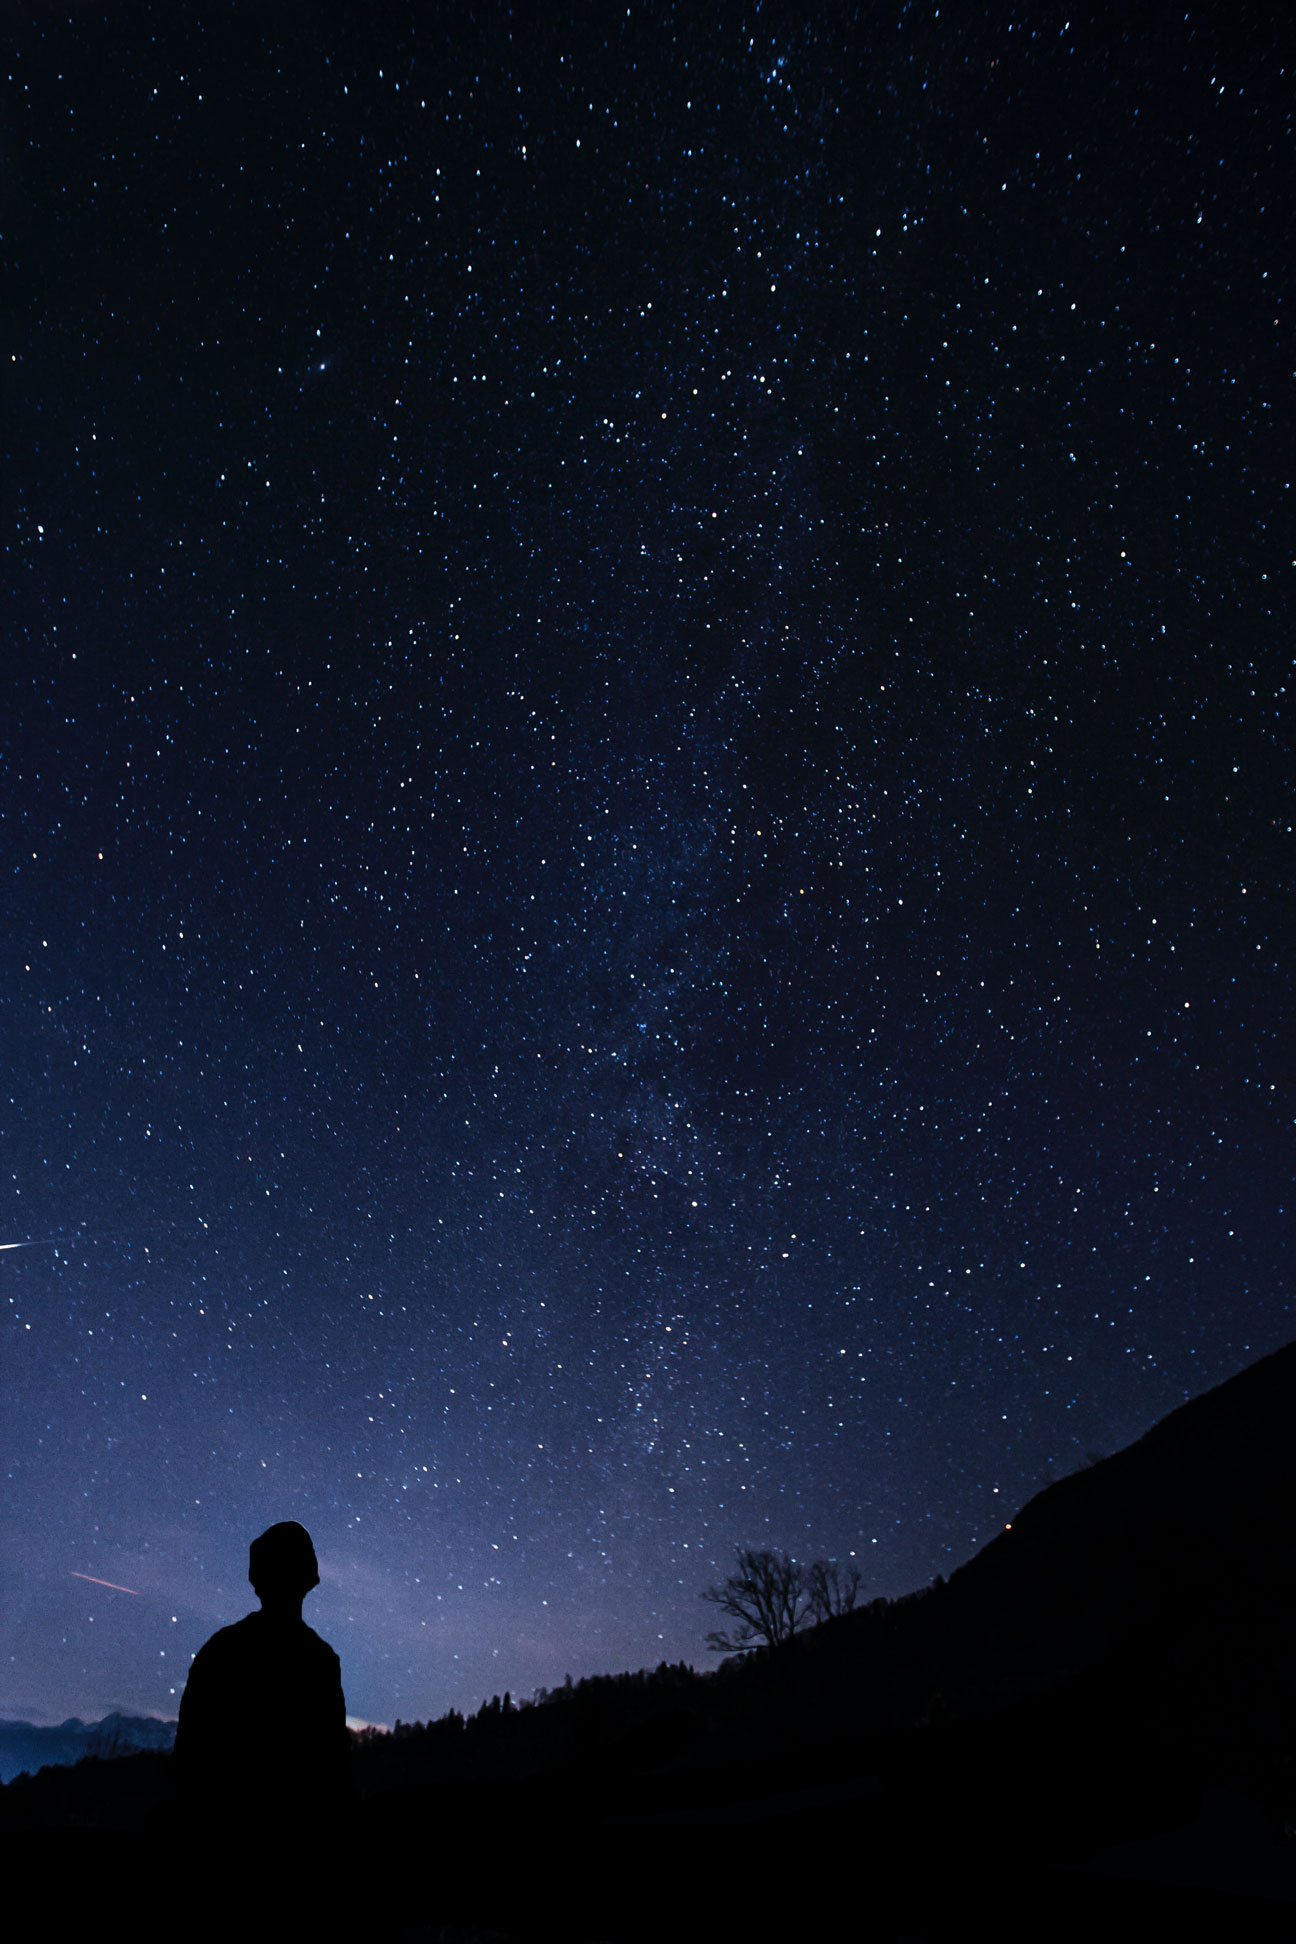 A man look the stars suring the night sky